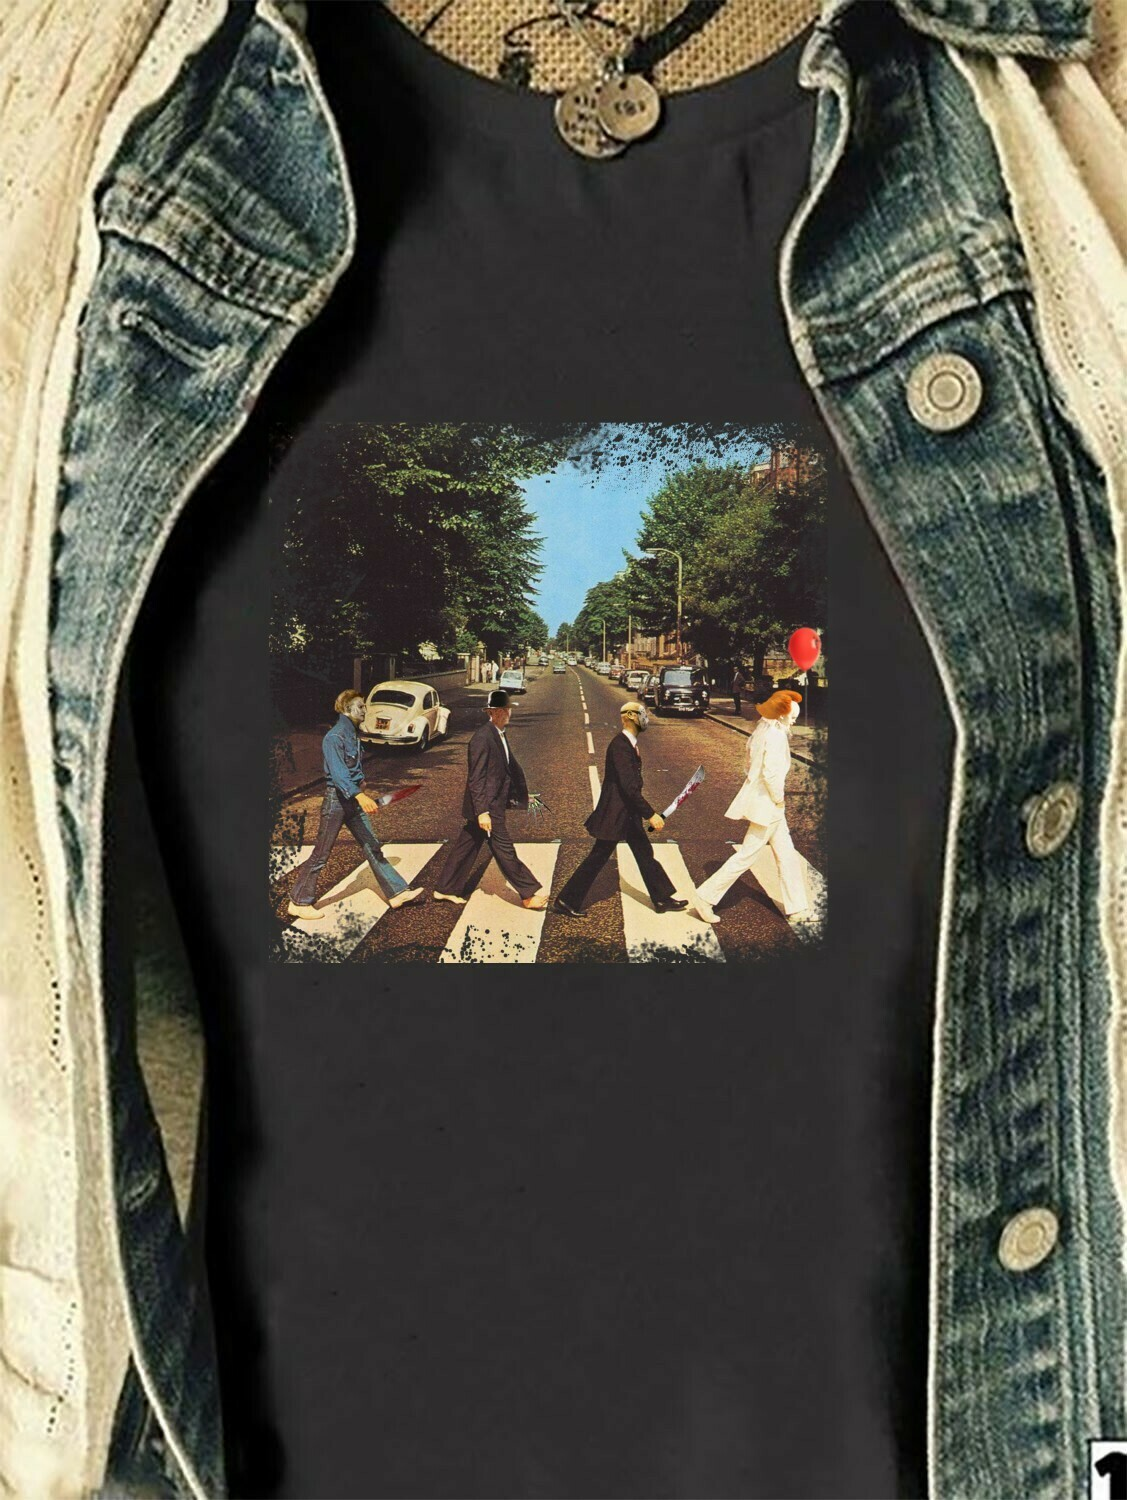 Funny Halloween Horror Character Abbey Road Mashup Friday The 13th IT Villains Halloween Horror Movie Mashup Squad Not So Scary T-Shirt Long Sleeve Sweatshirt Hoodie Jolly Family Gifts